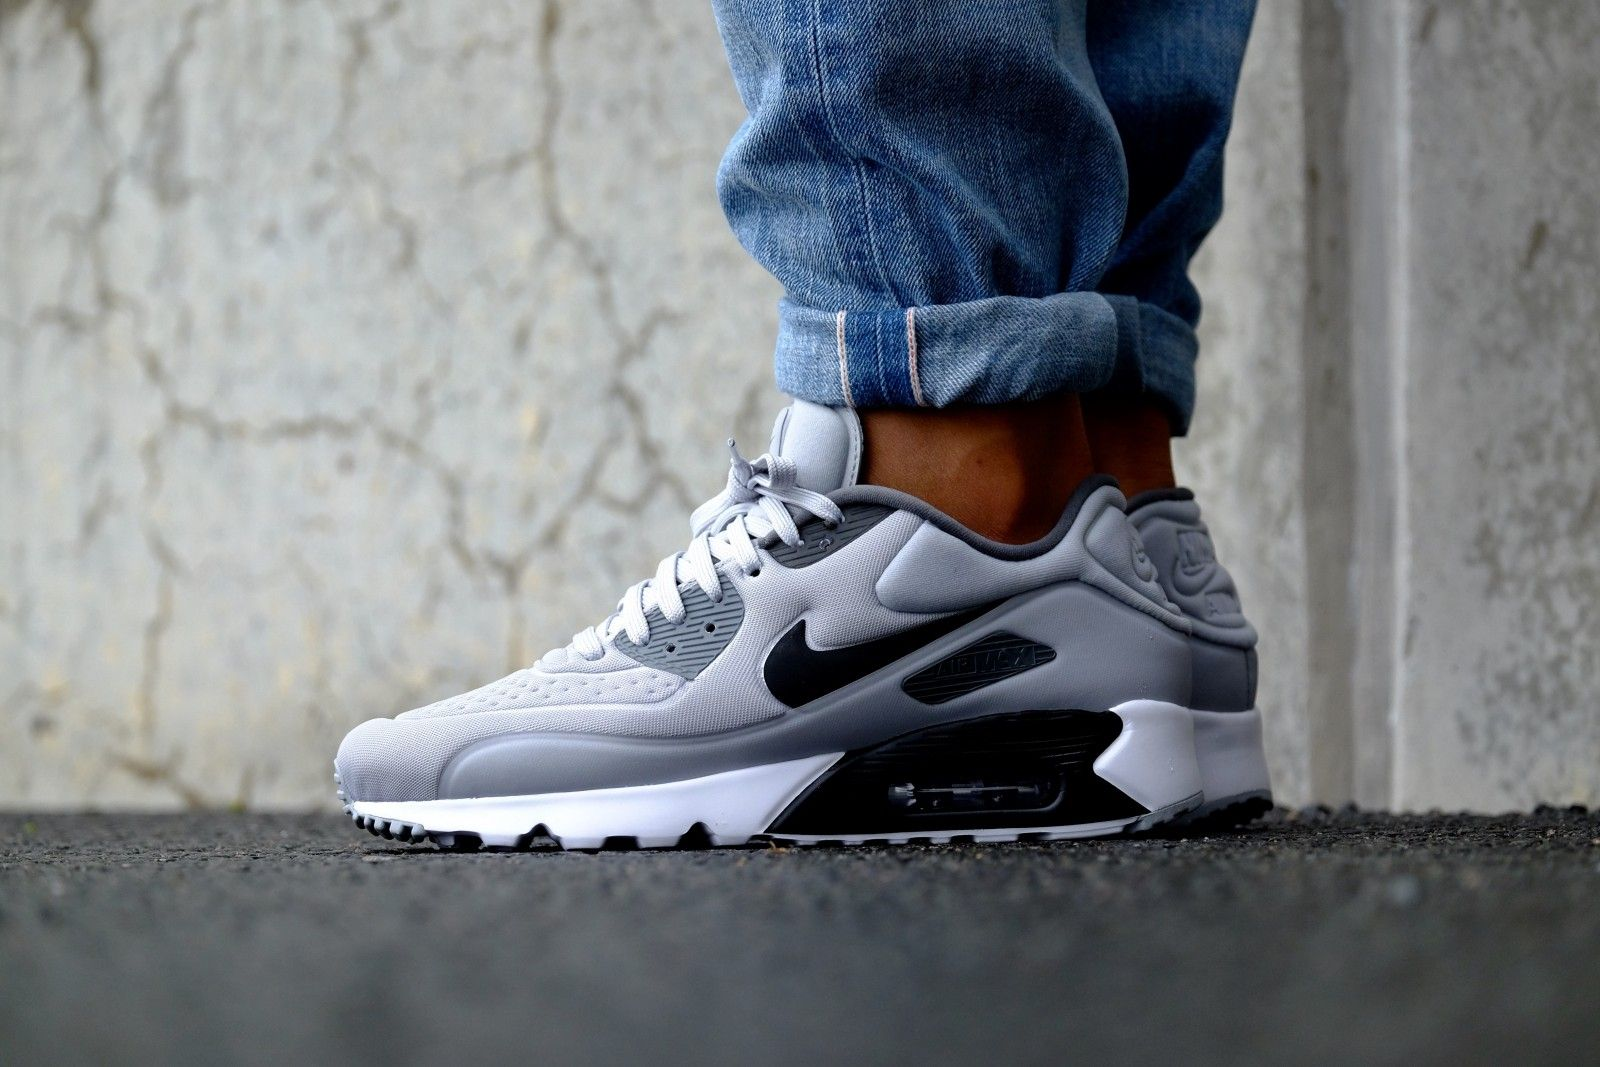 Nike Air Max 90 Ultra Special Edition Wolf Grey/ Black Dark Grey - 845039-